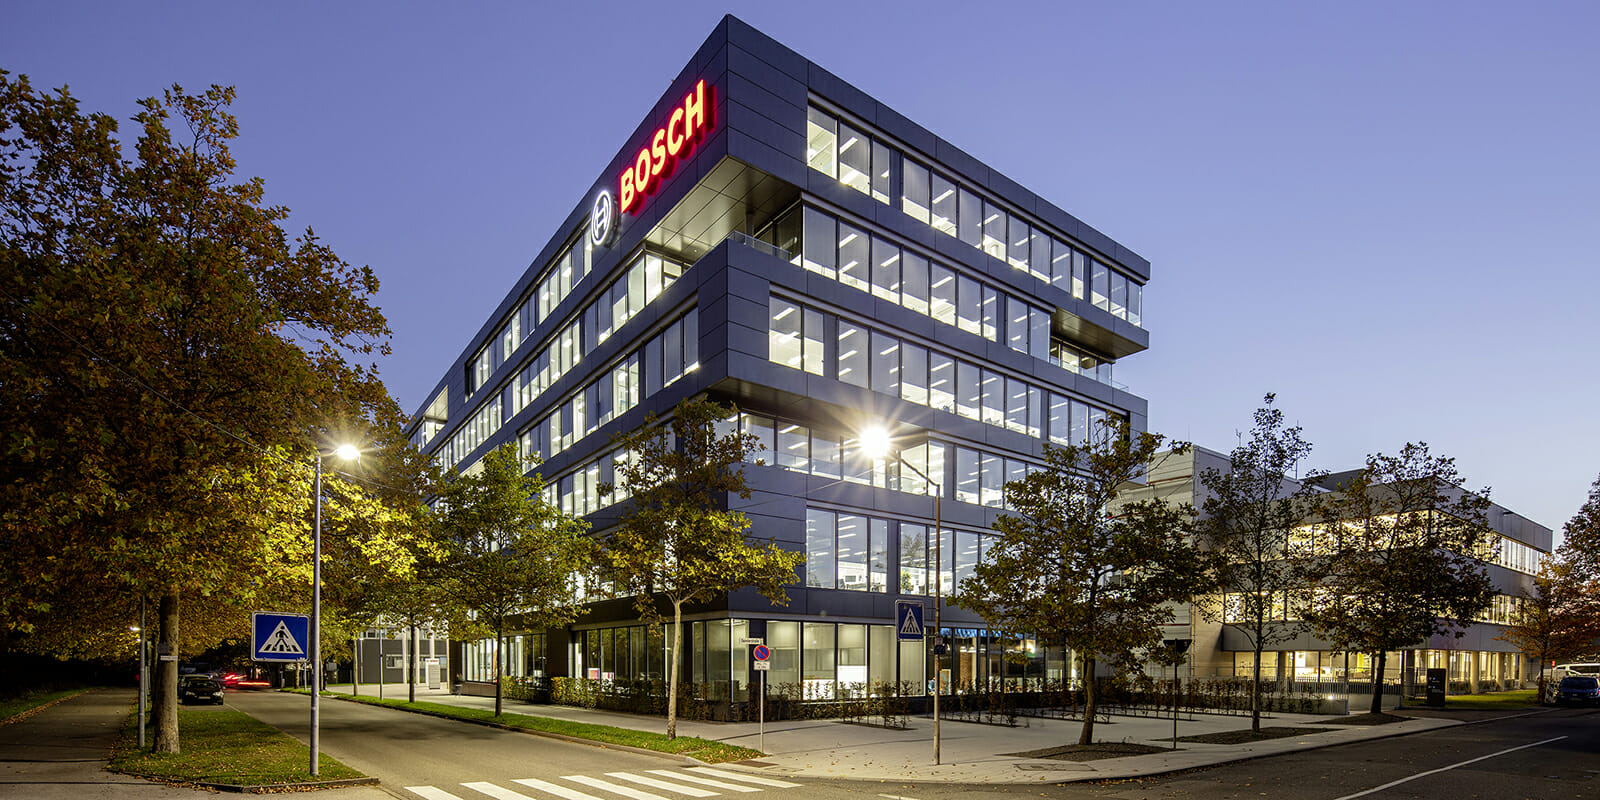 Robert Bosch Power Tools GmbH, 70771 Leinfelden-Echterdingen